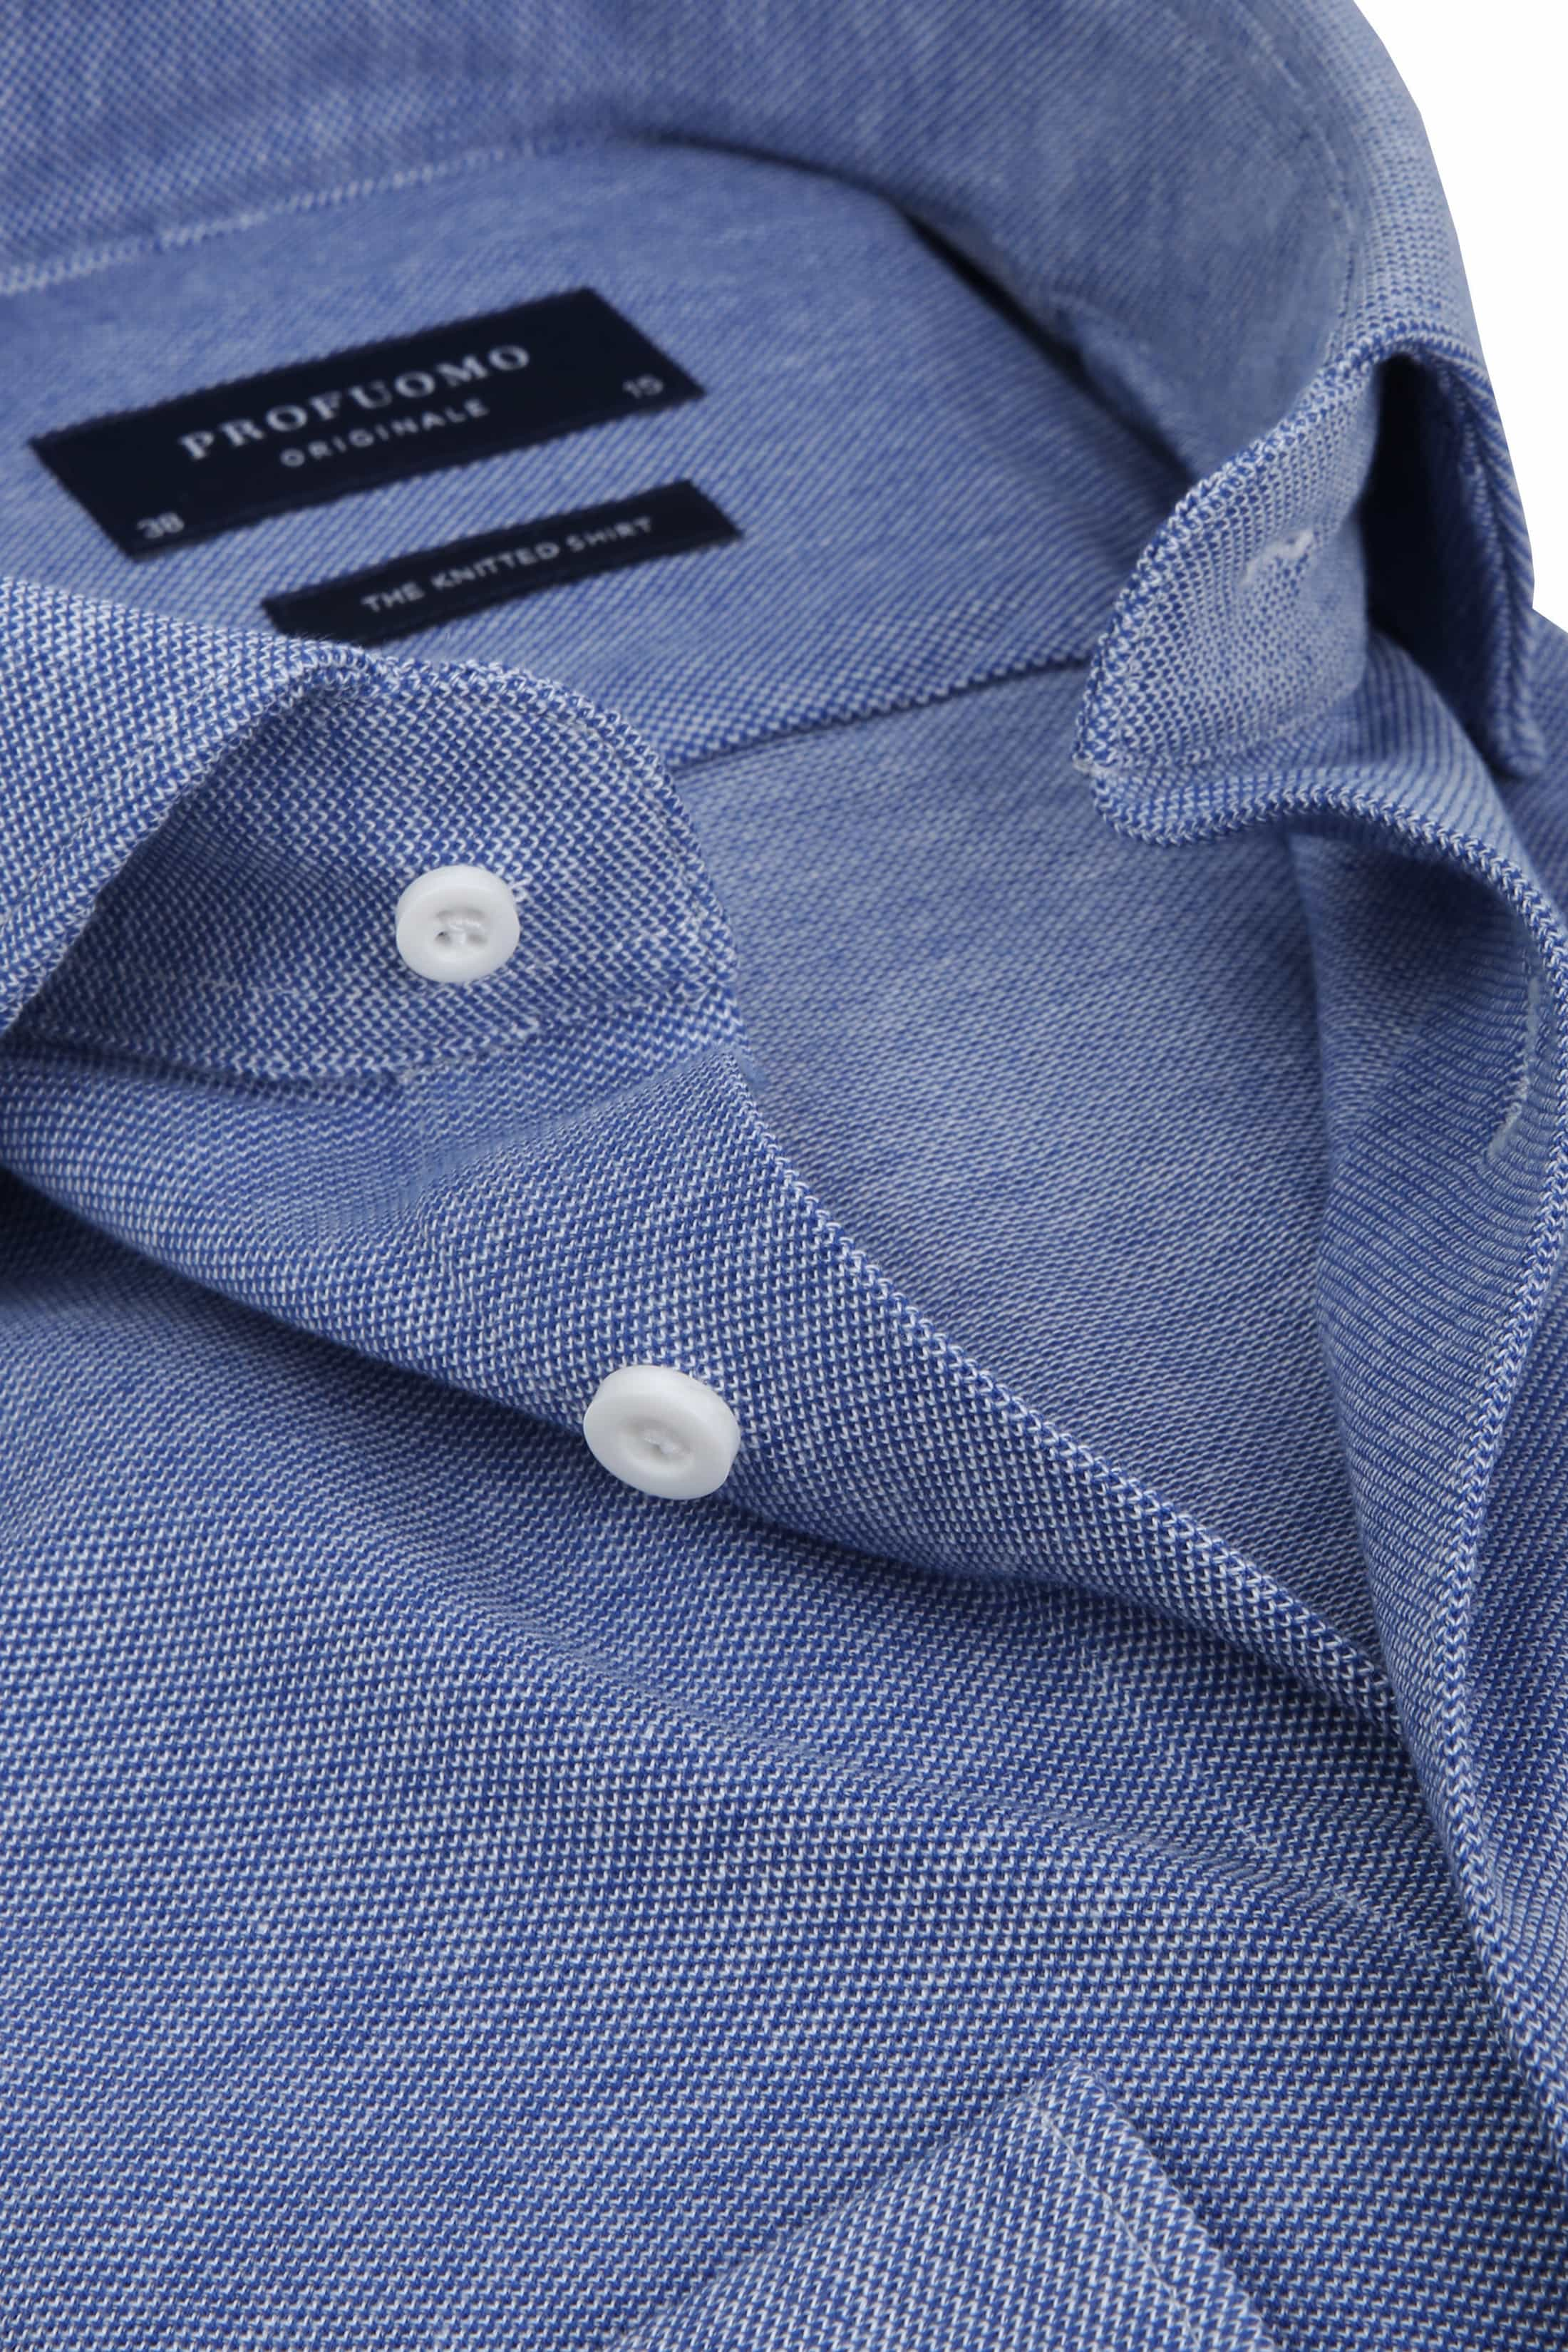 Profuomo Shirt Knitted Mid Blue foto 1